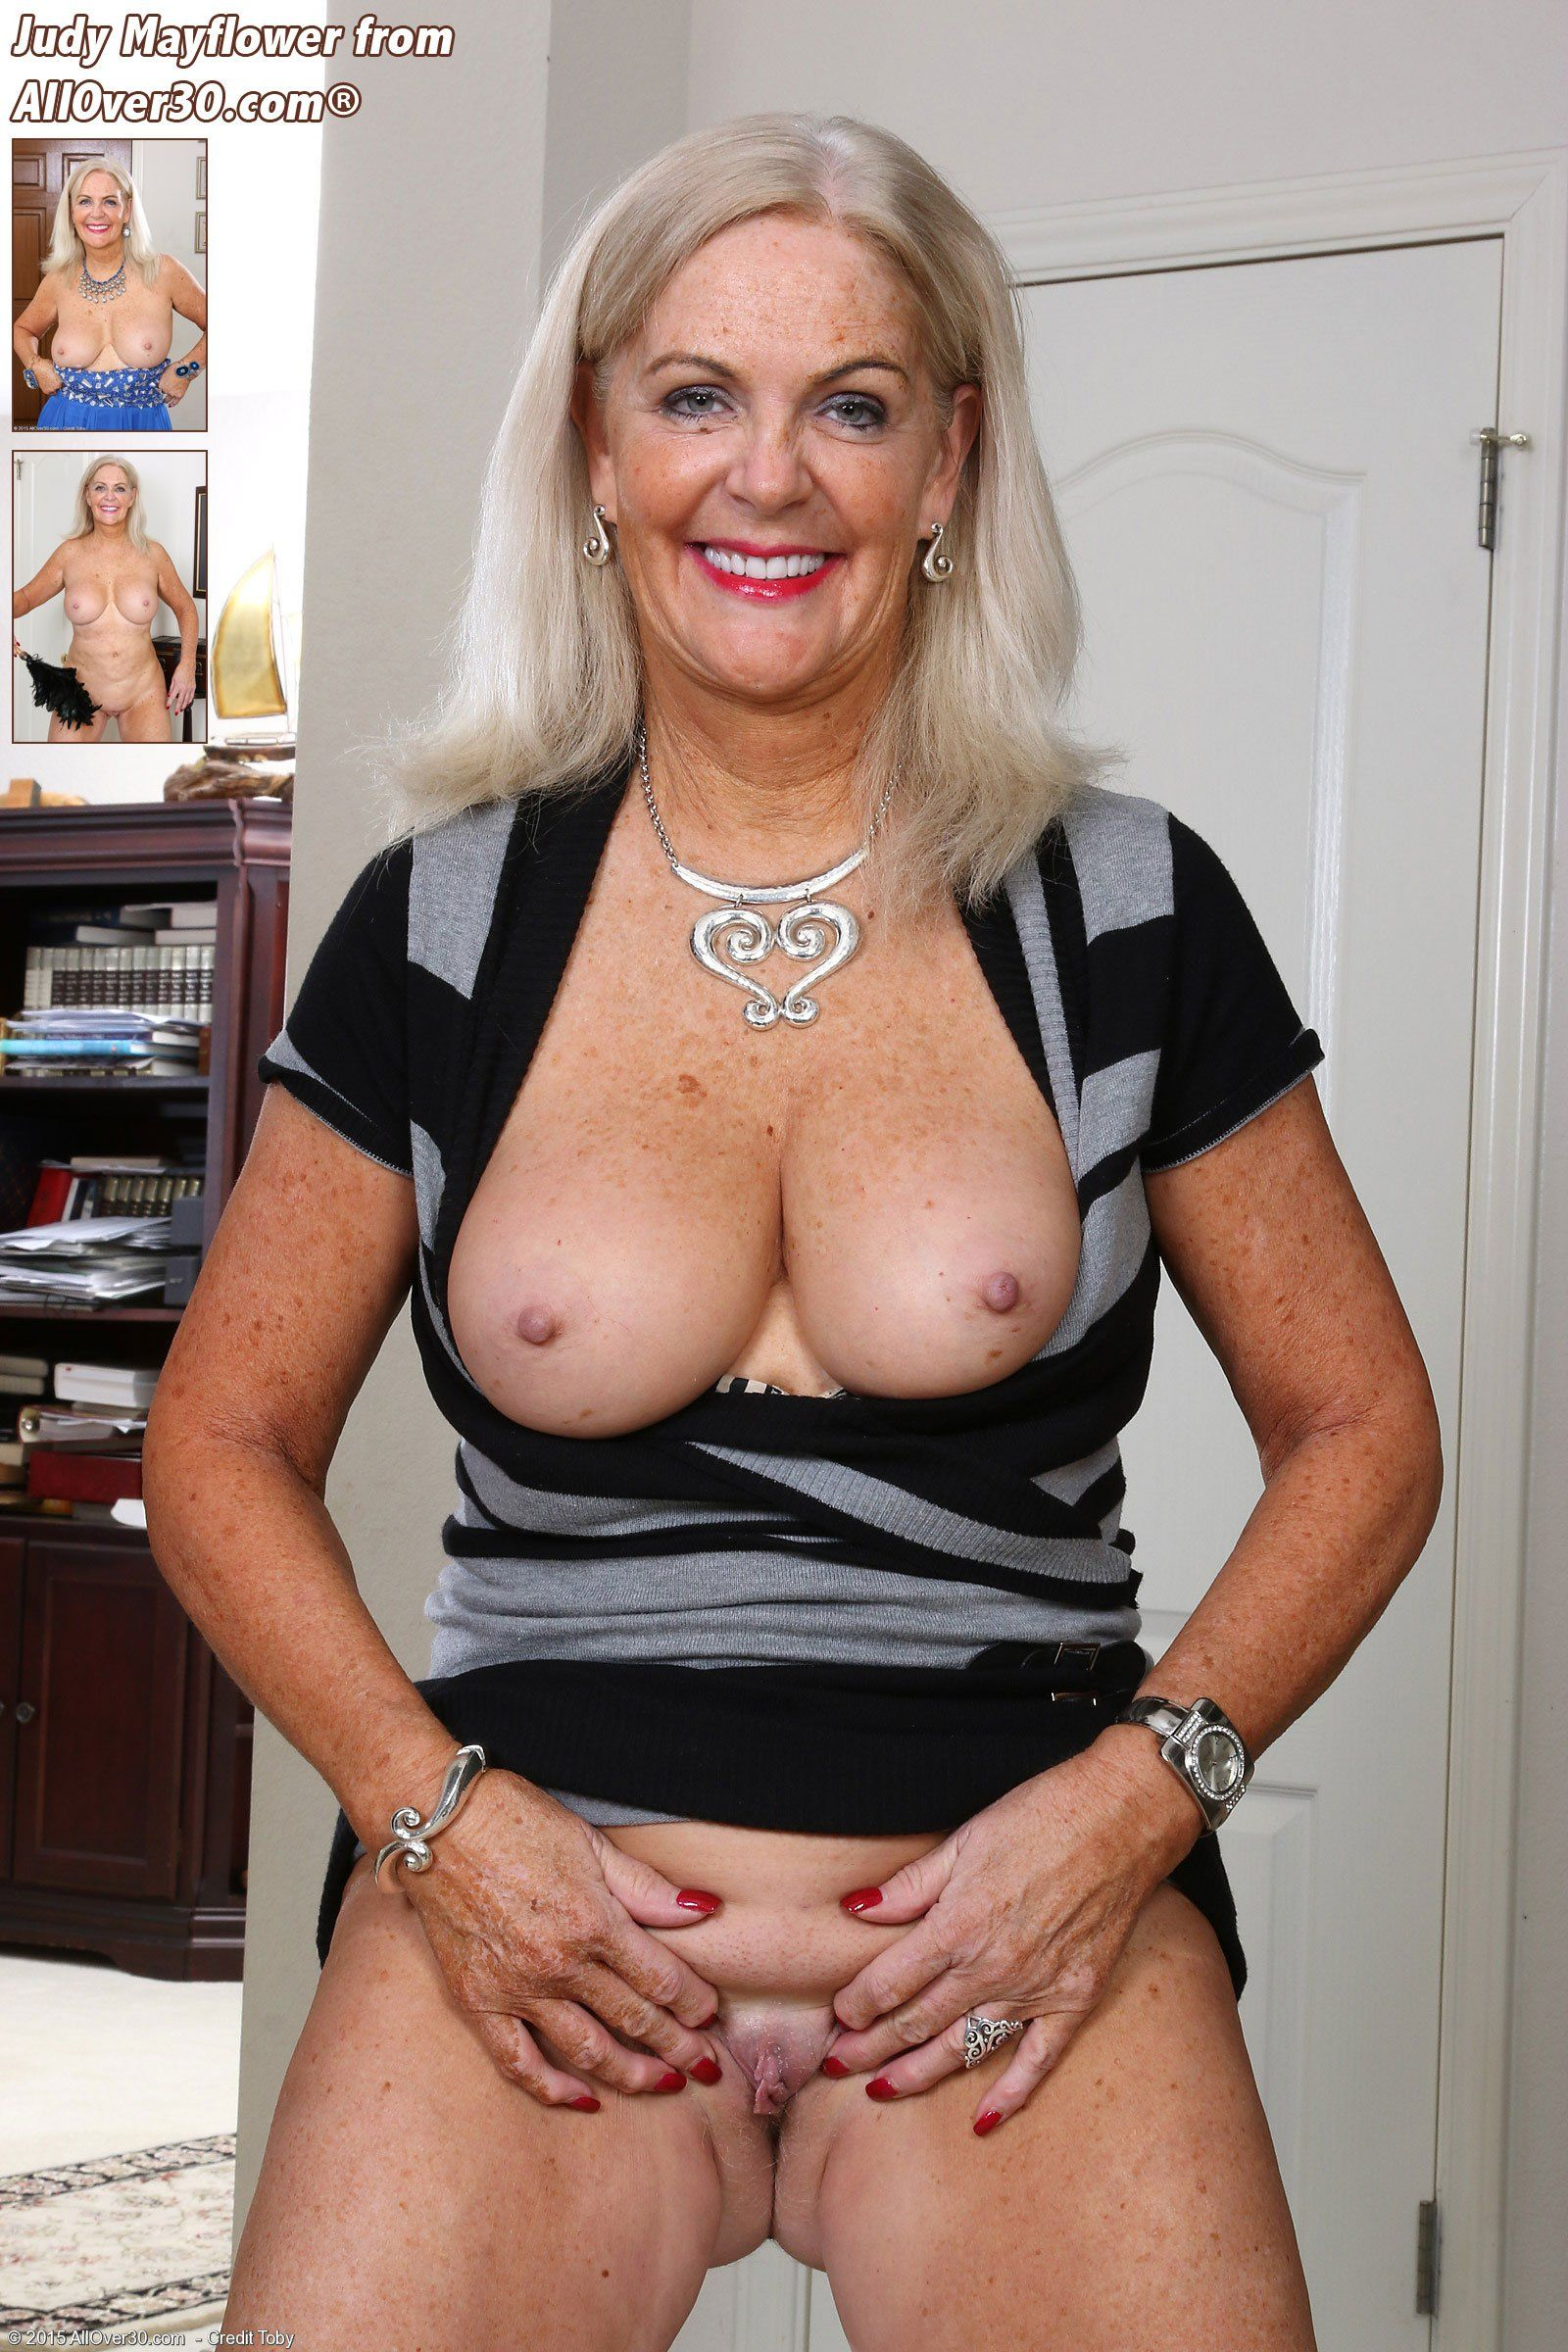 American Milf Nude sexy naked ladies milf - adult videos. comments: 5